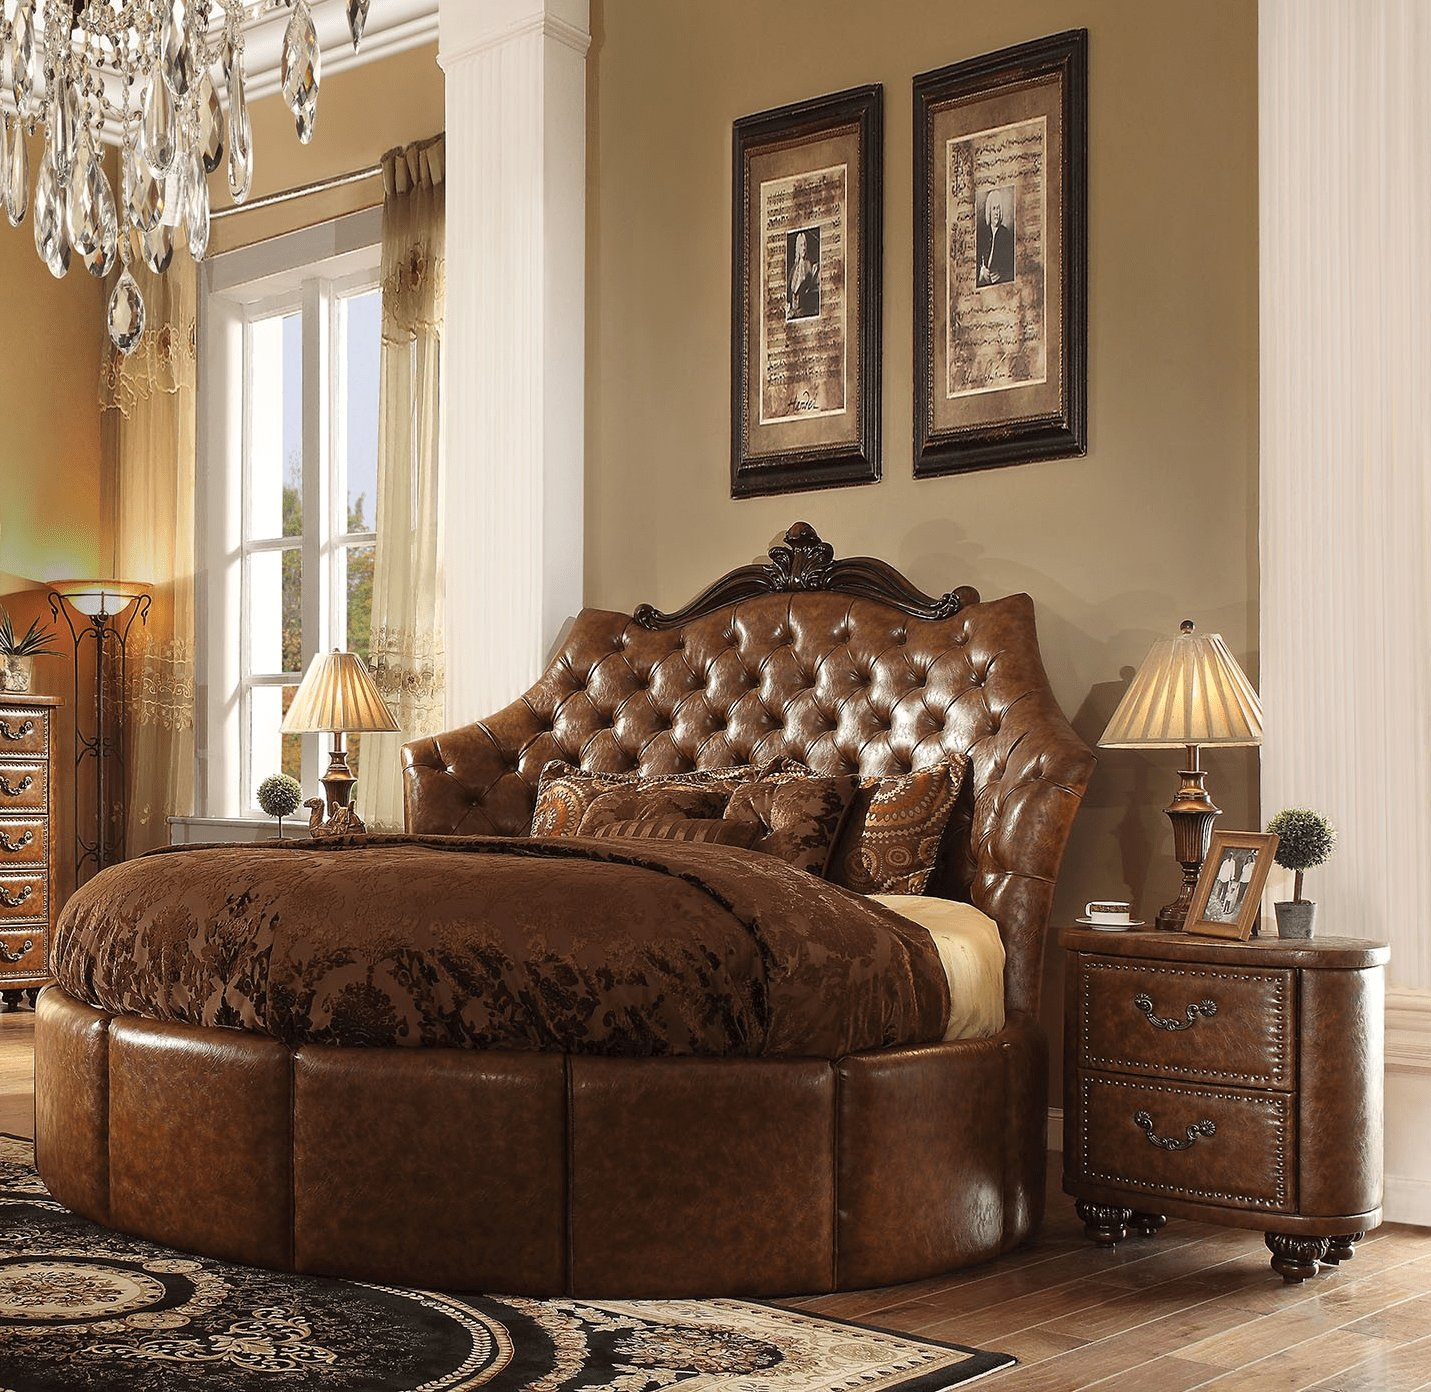 Best Formal Round Cherry Brown Bedroom Set Acme Hot Sectionals With Pictures